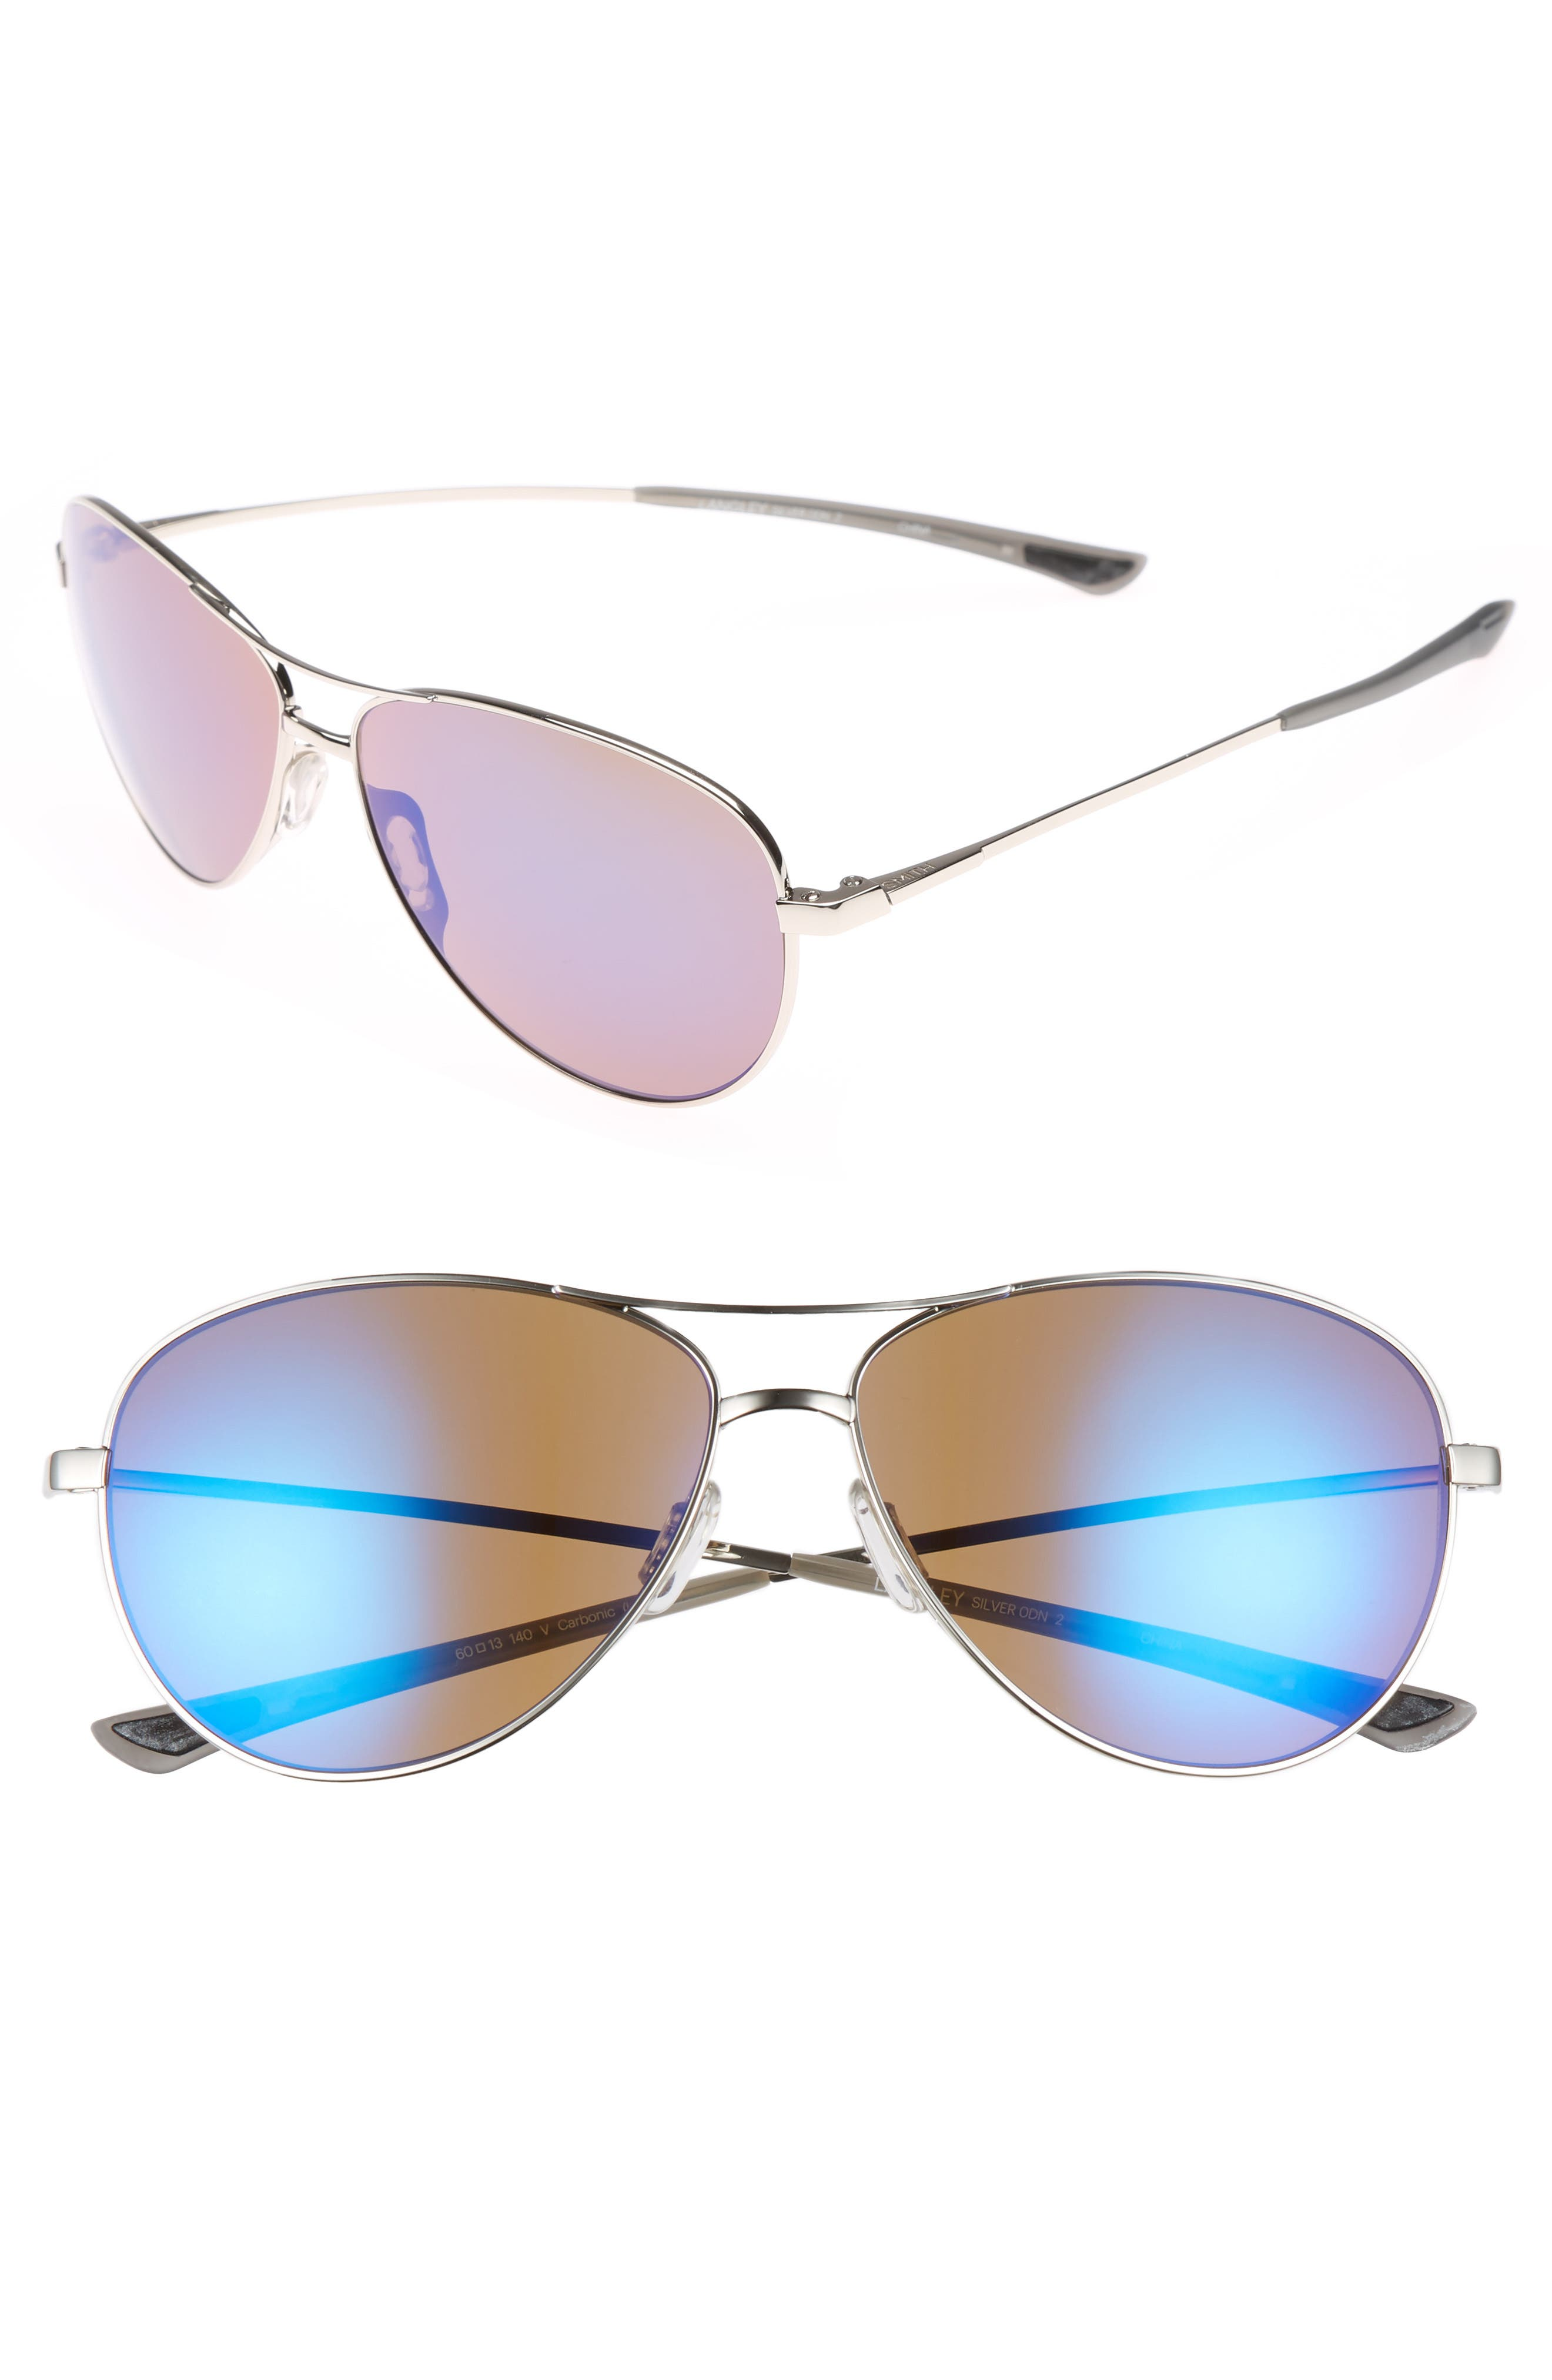 'LANGLEY' 60MM AVIATOR SUNGLASSES - SILVER/ BLUE